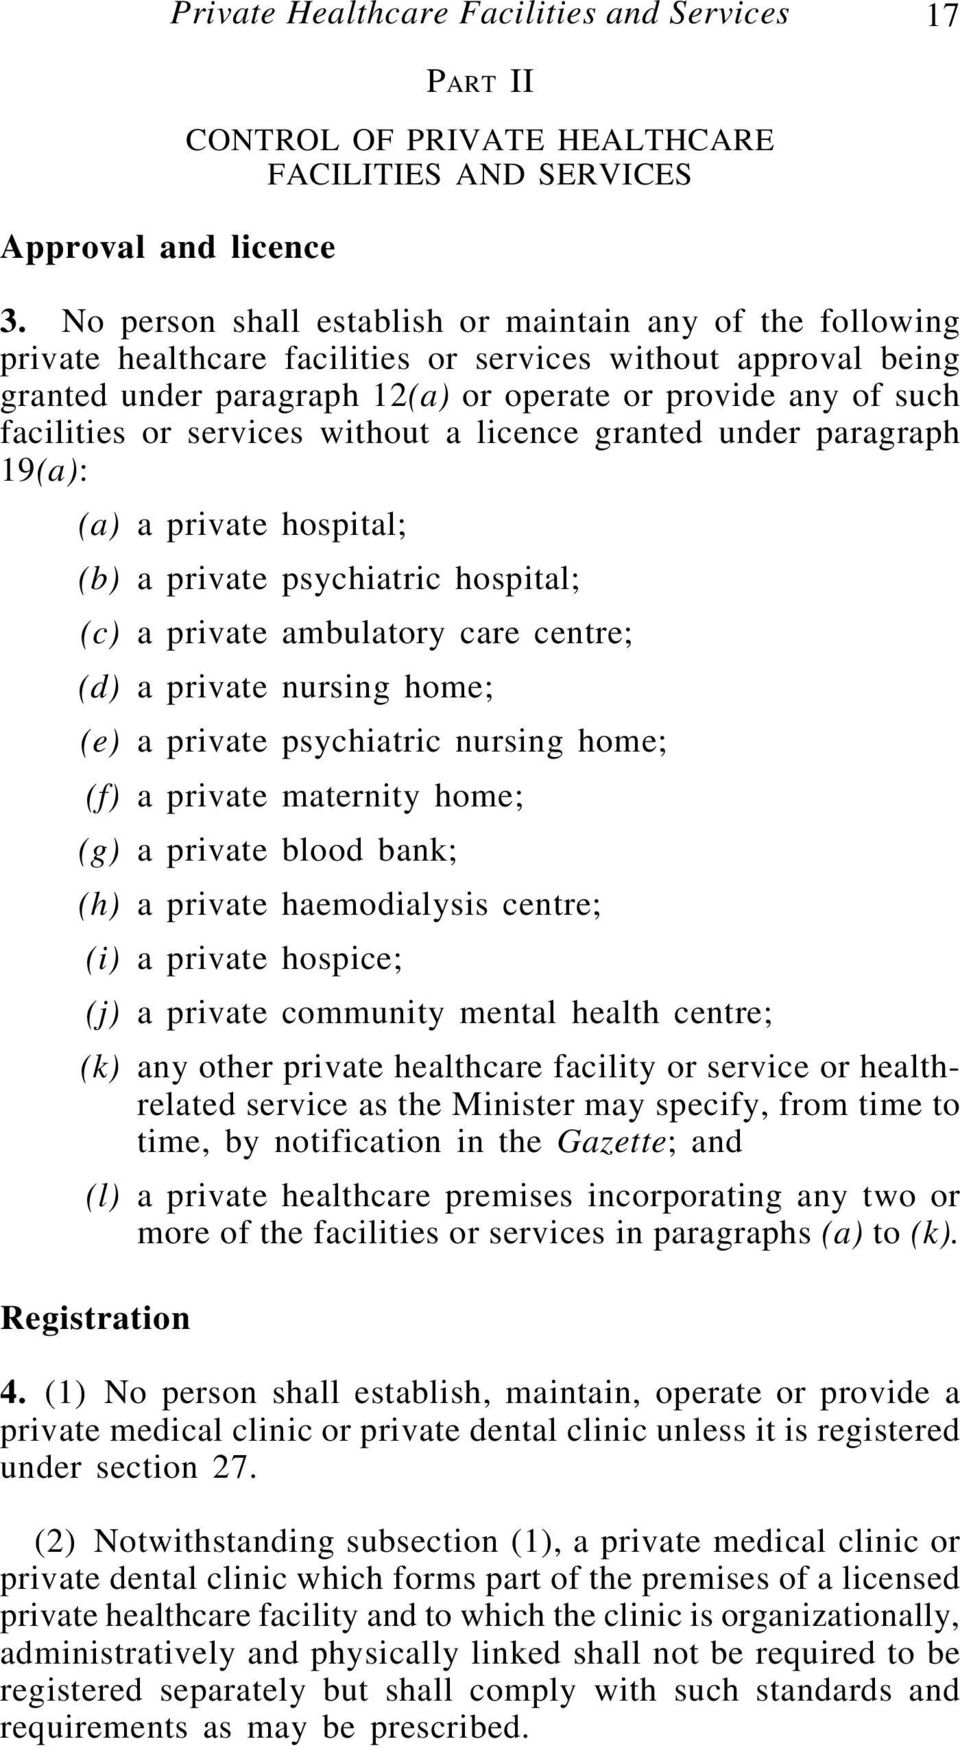 or services without a licence granted under paragraph 19(a): (a) a private hospital; (b) a private psychiatric hospital; (c) a private ambulatory care centre; (d) a private nursing home; (e) a